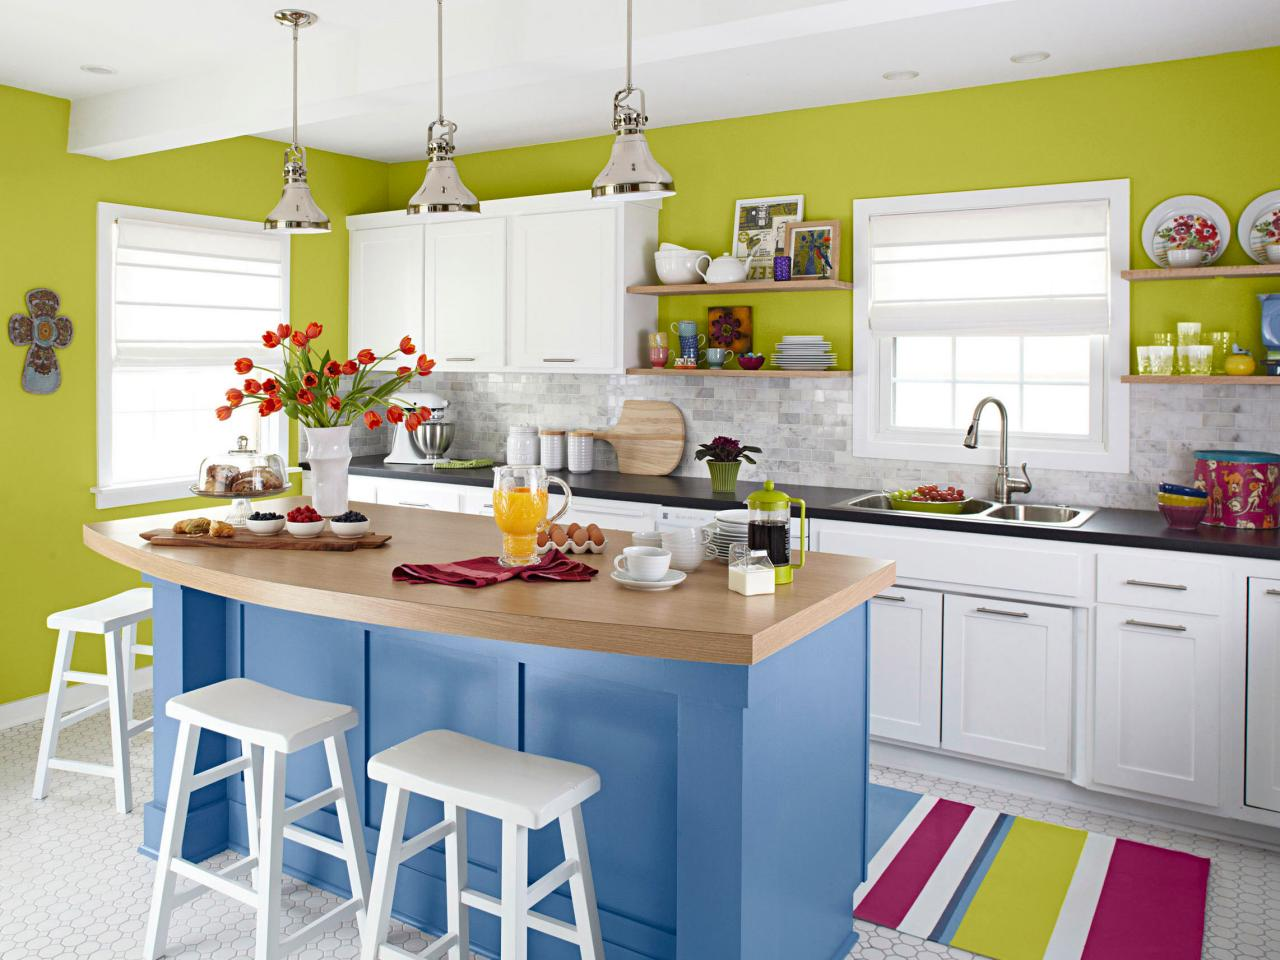 Perky And Playful Kitchen Island